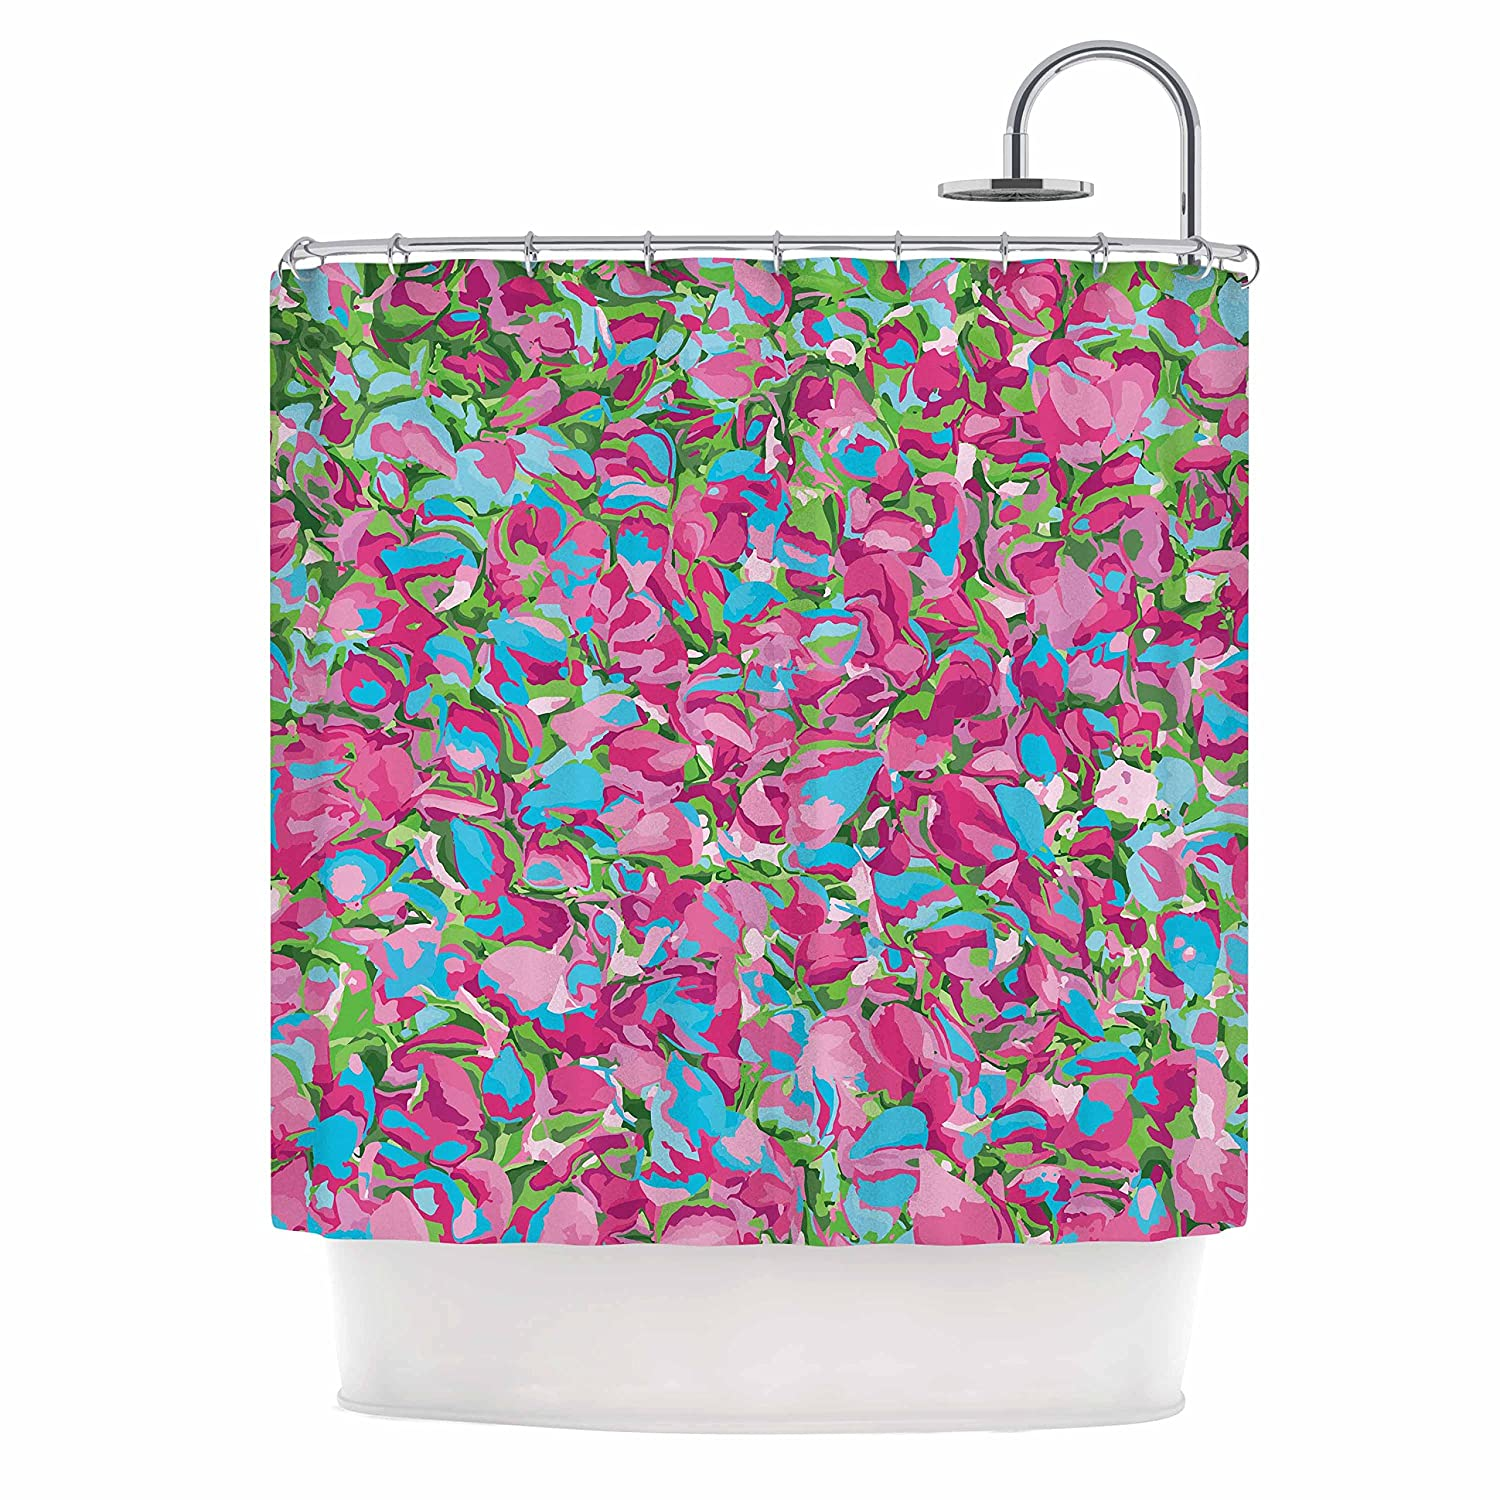 69 x 70 Shower Curtain Kess InHouse Empire Ruhl Abstract Spring Petals Pink Teal